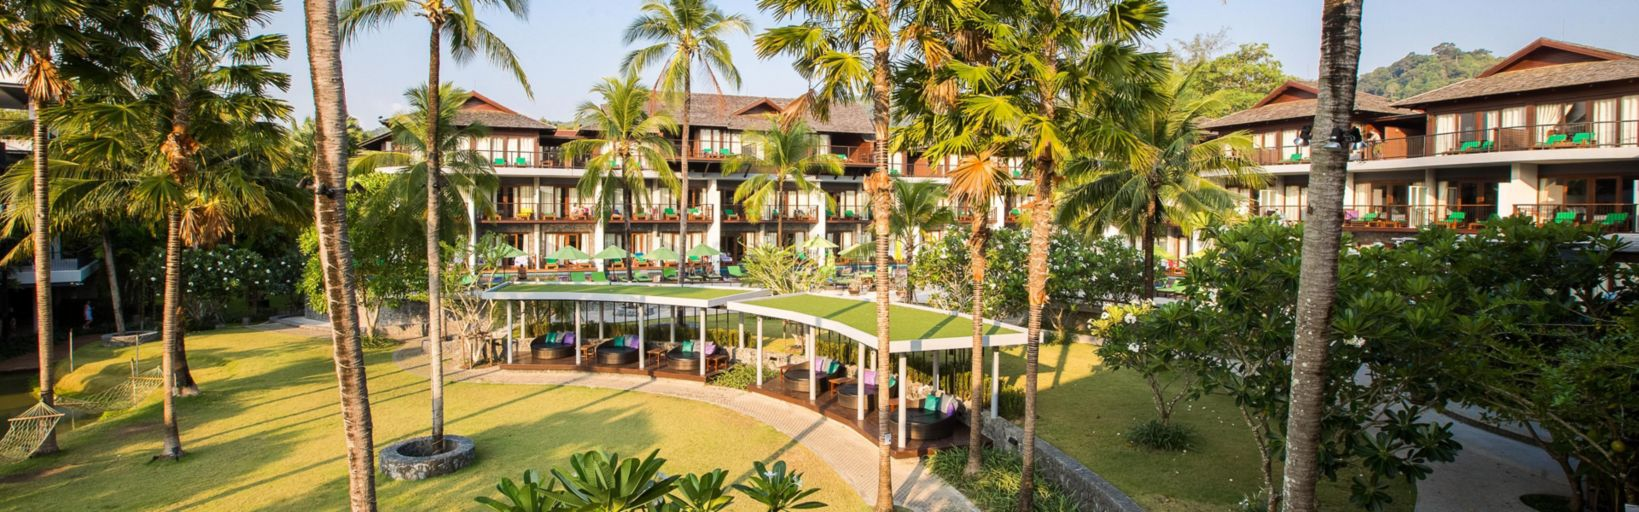 holiday-inn-resort-krabi-3923660628-16×5